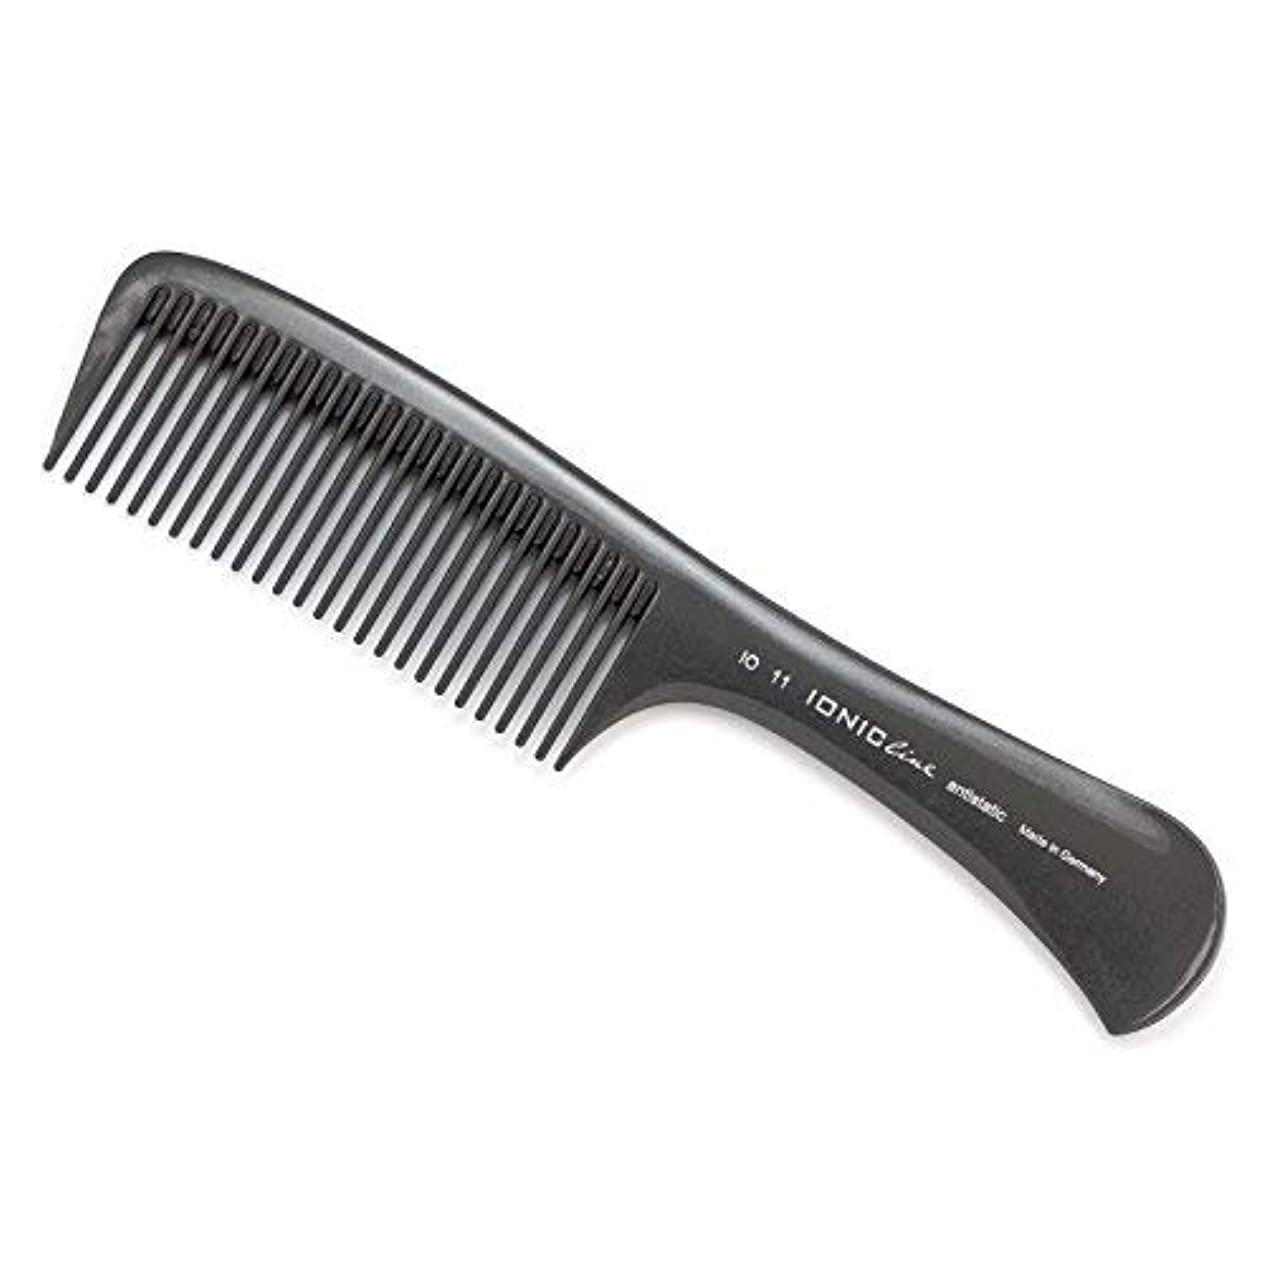 言うまでもなく寄付するピラミッドHercules S?gemann IONIC Line Handle Comb, Big Working Comb | Ionized Thermoplastic - Made in Germany [並行輸入品]